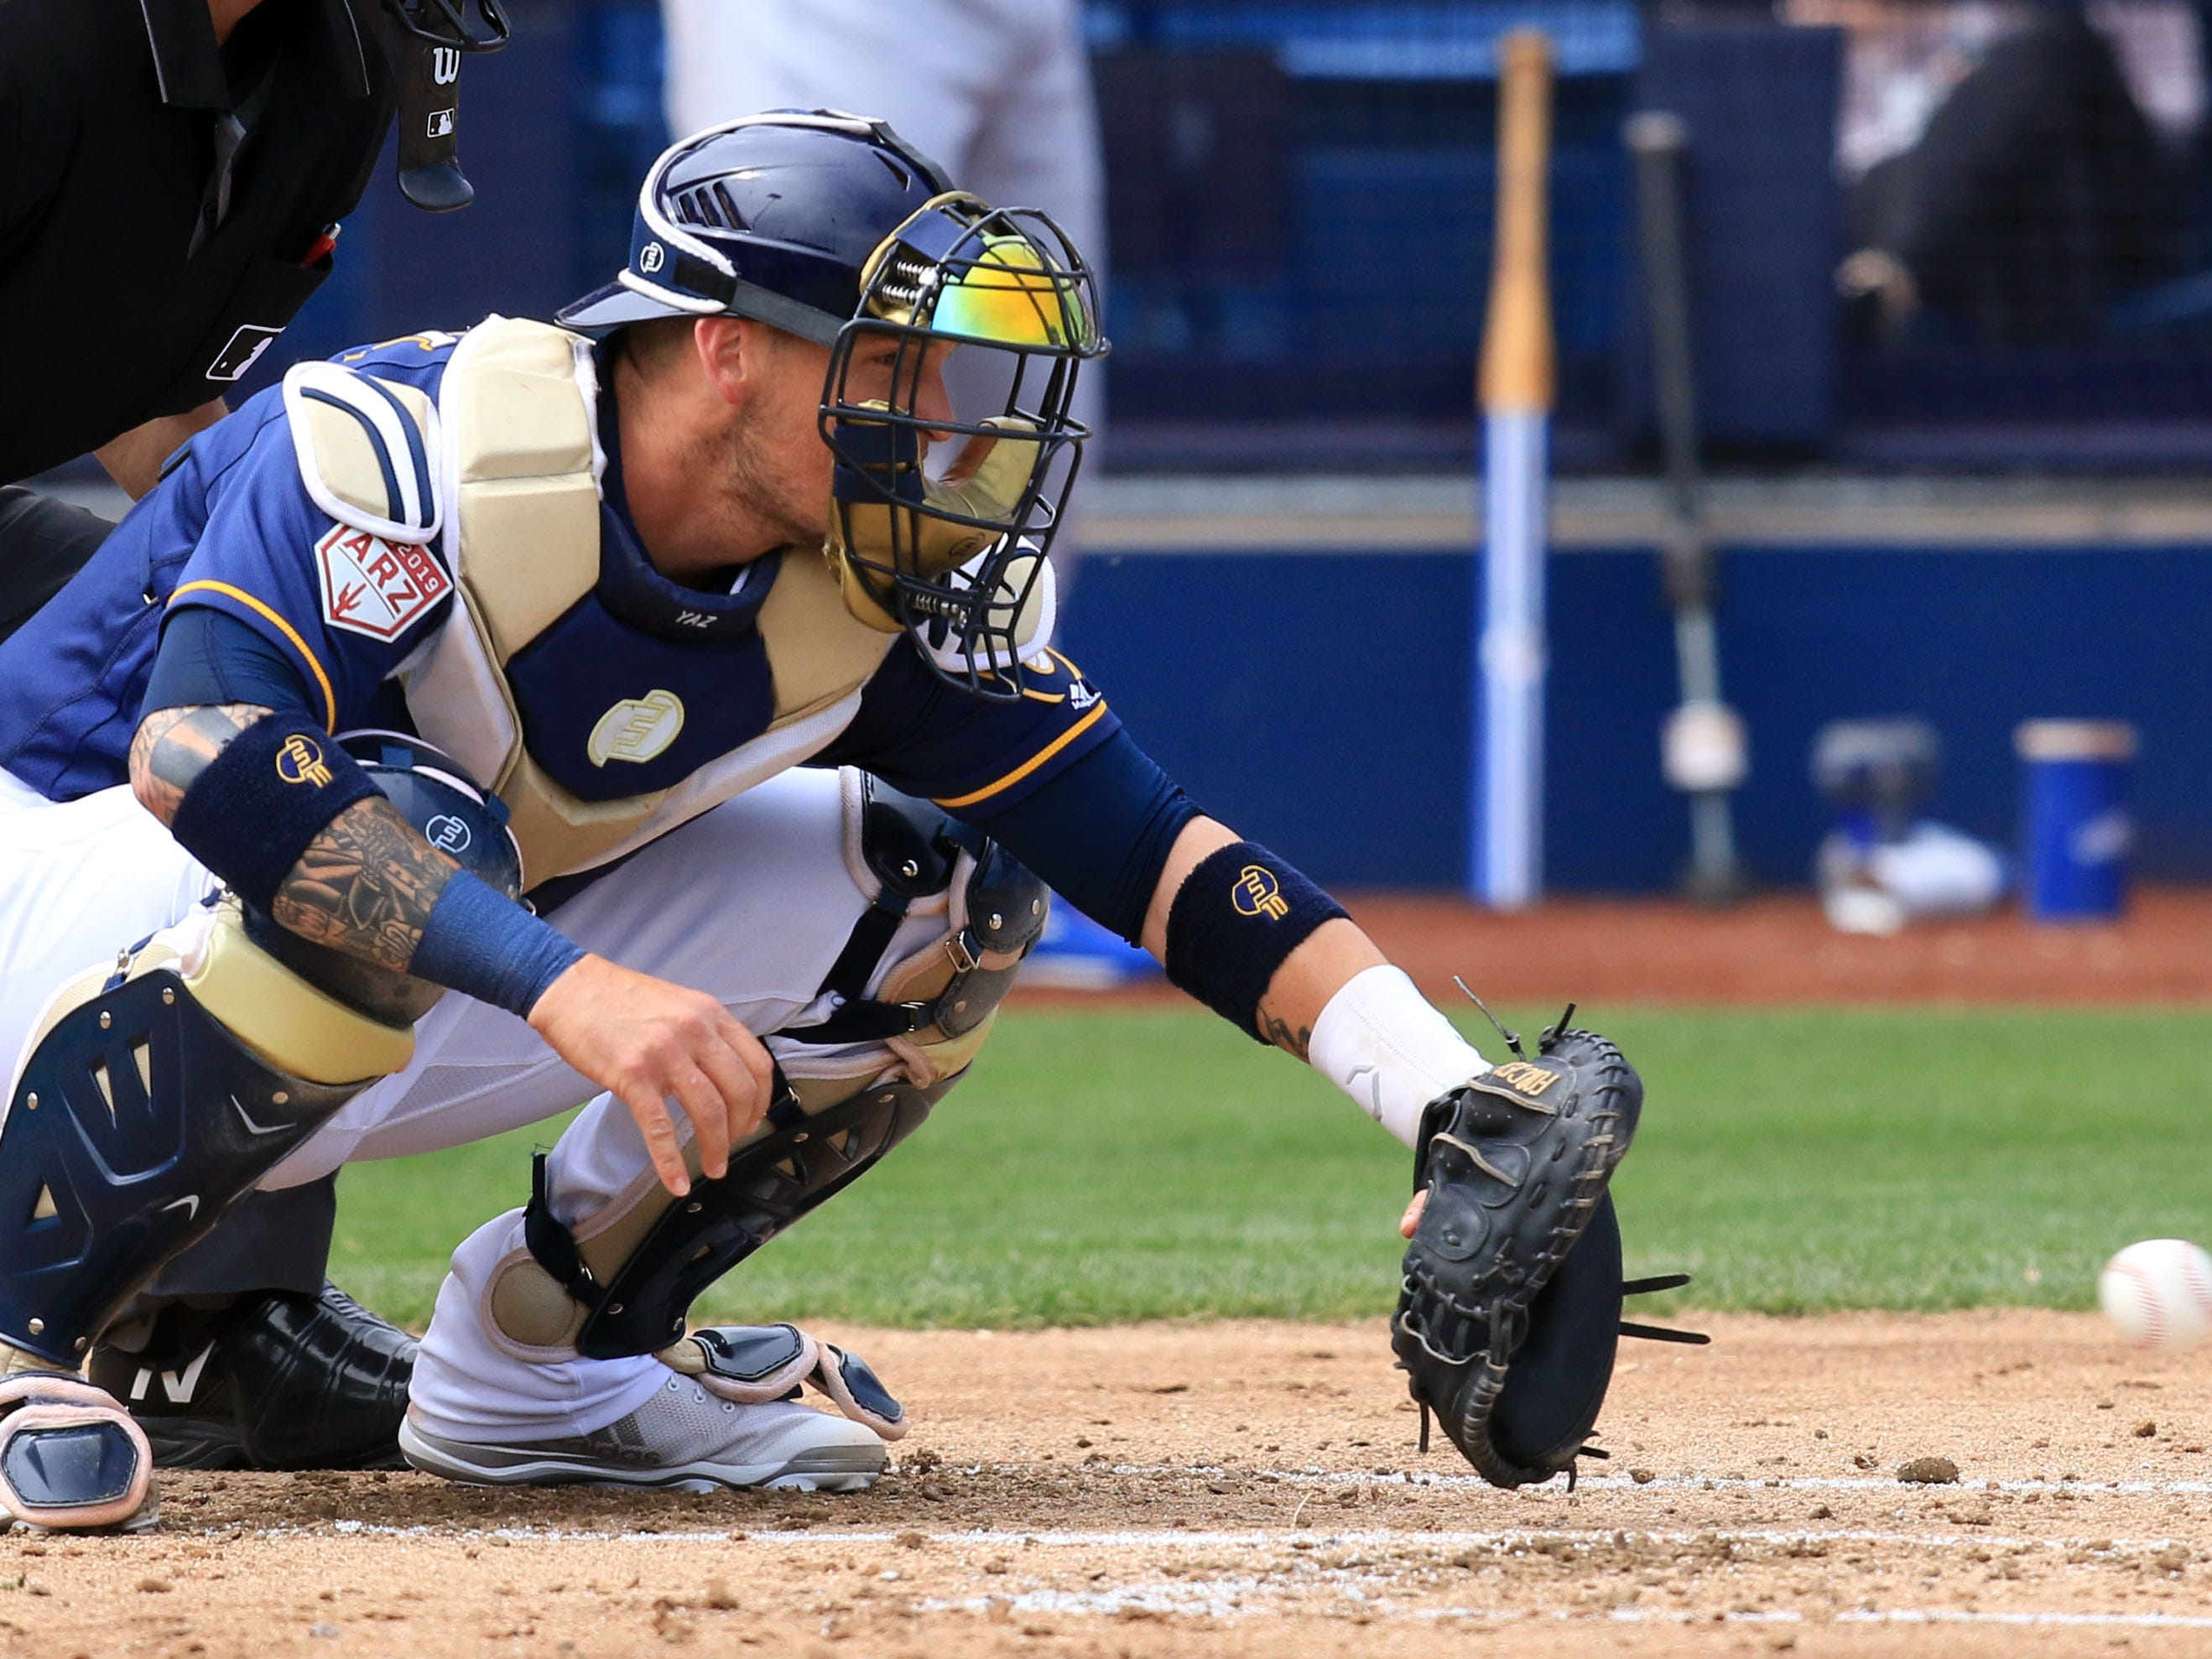 Brewers catch Yasmani Grandal gets ready to receiver a pitch against his former team Thursday.